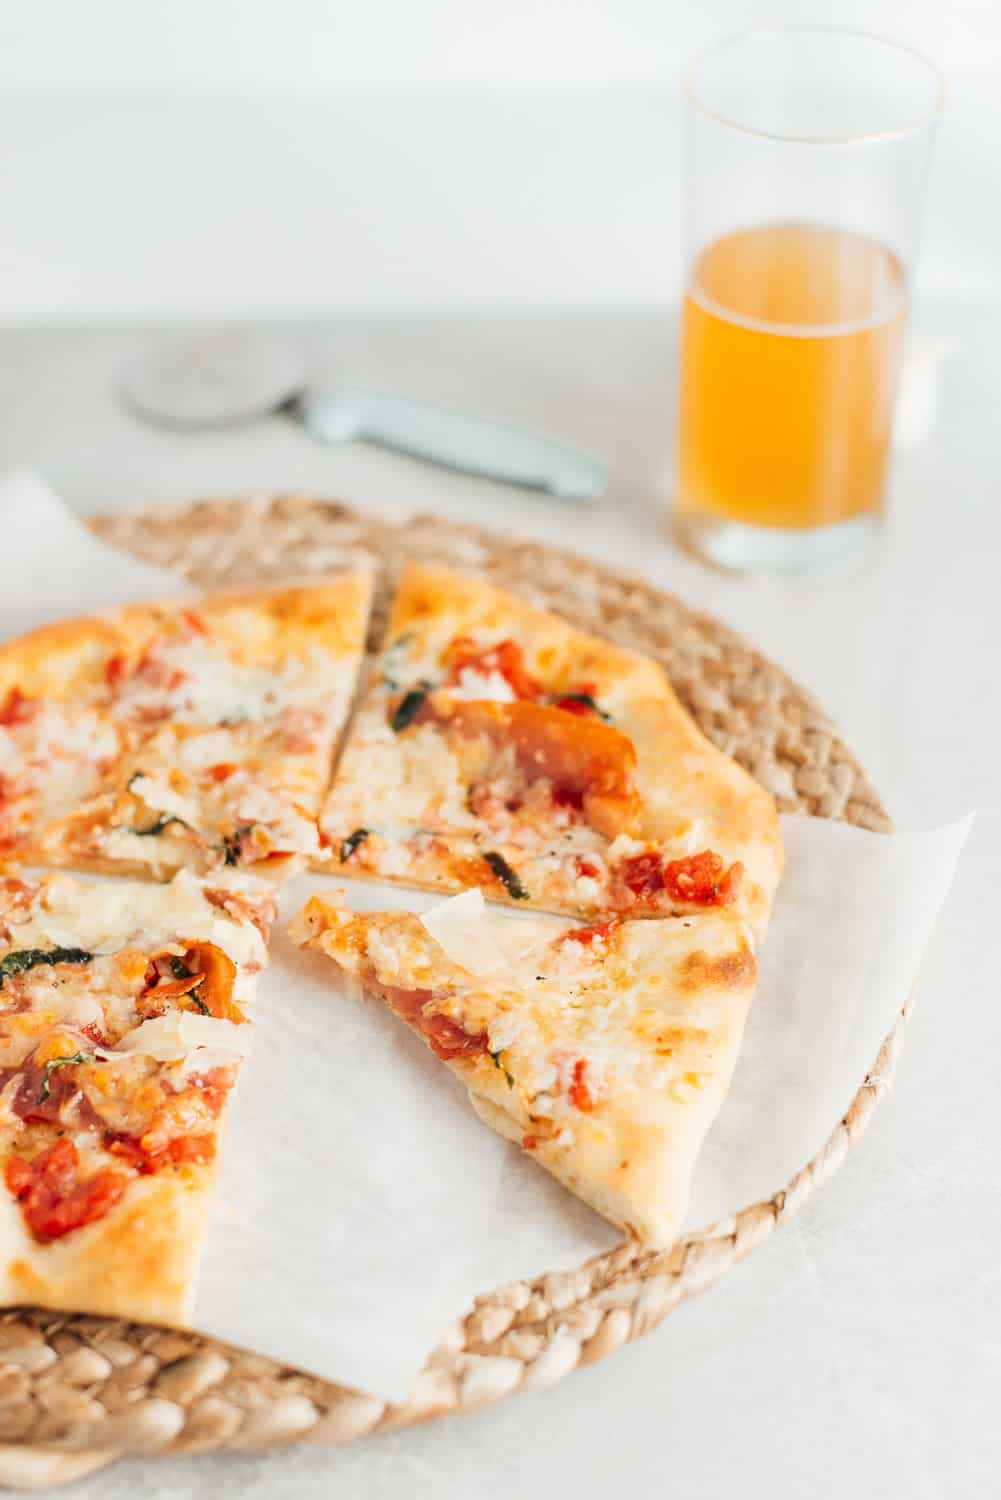 Easy homemade pizza with a glass of beer.